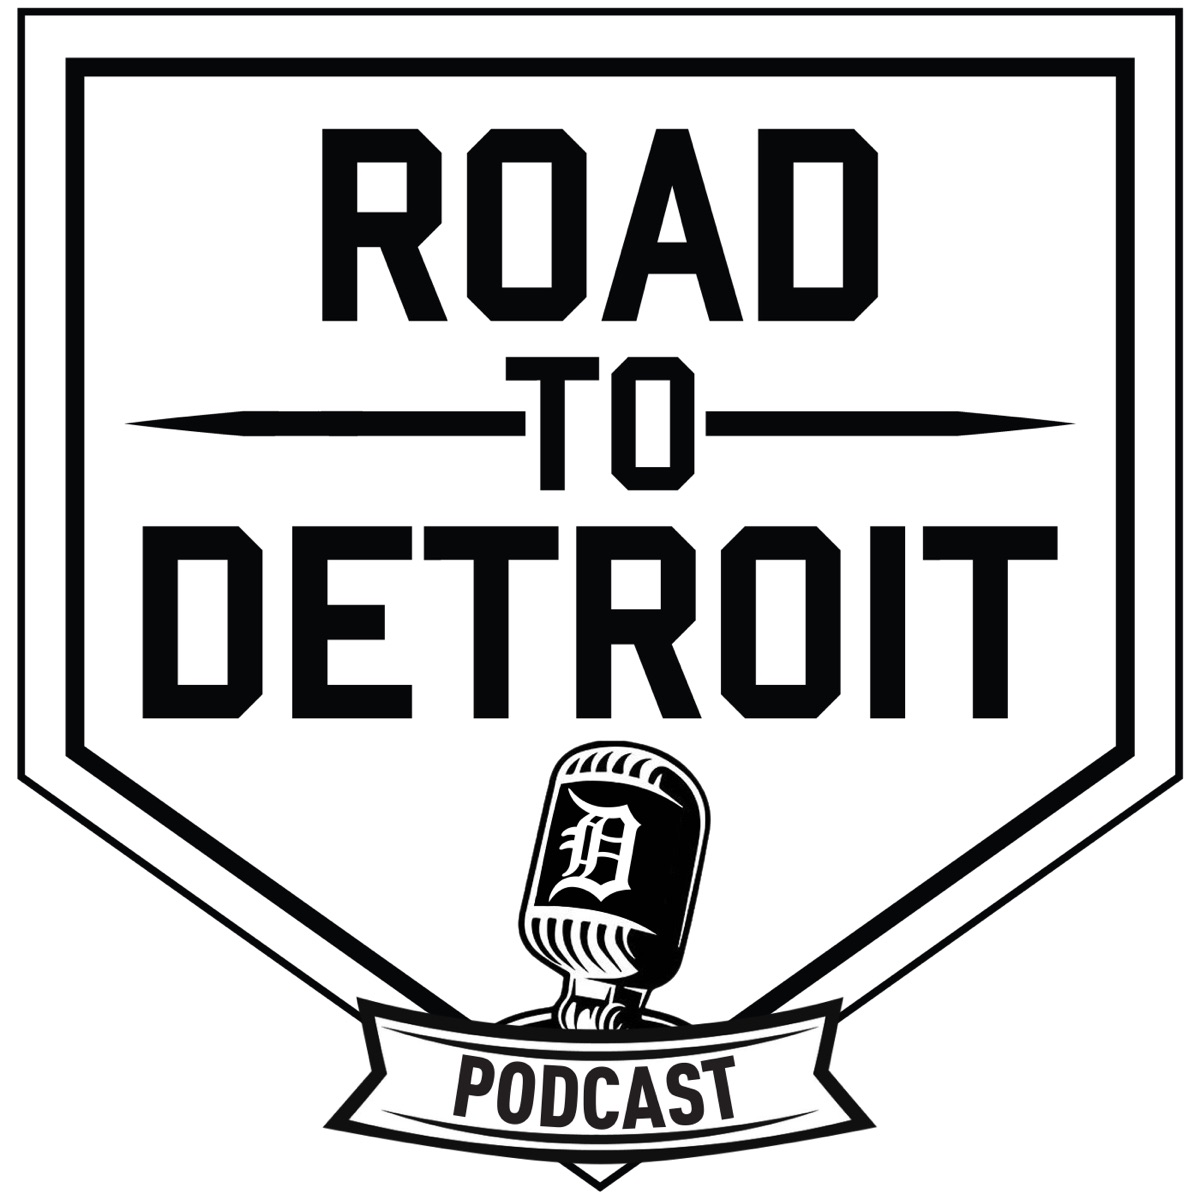 Road To Detroit Episode 13: Top Level Report